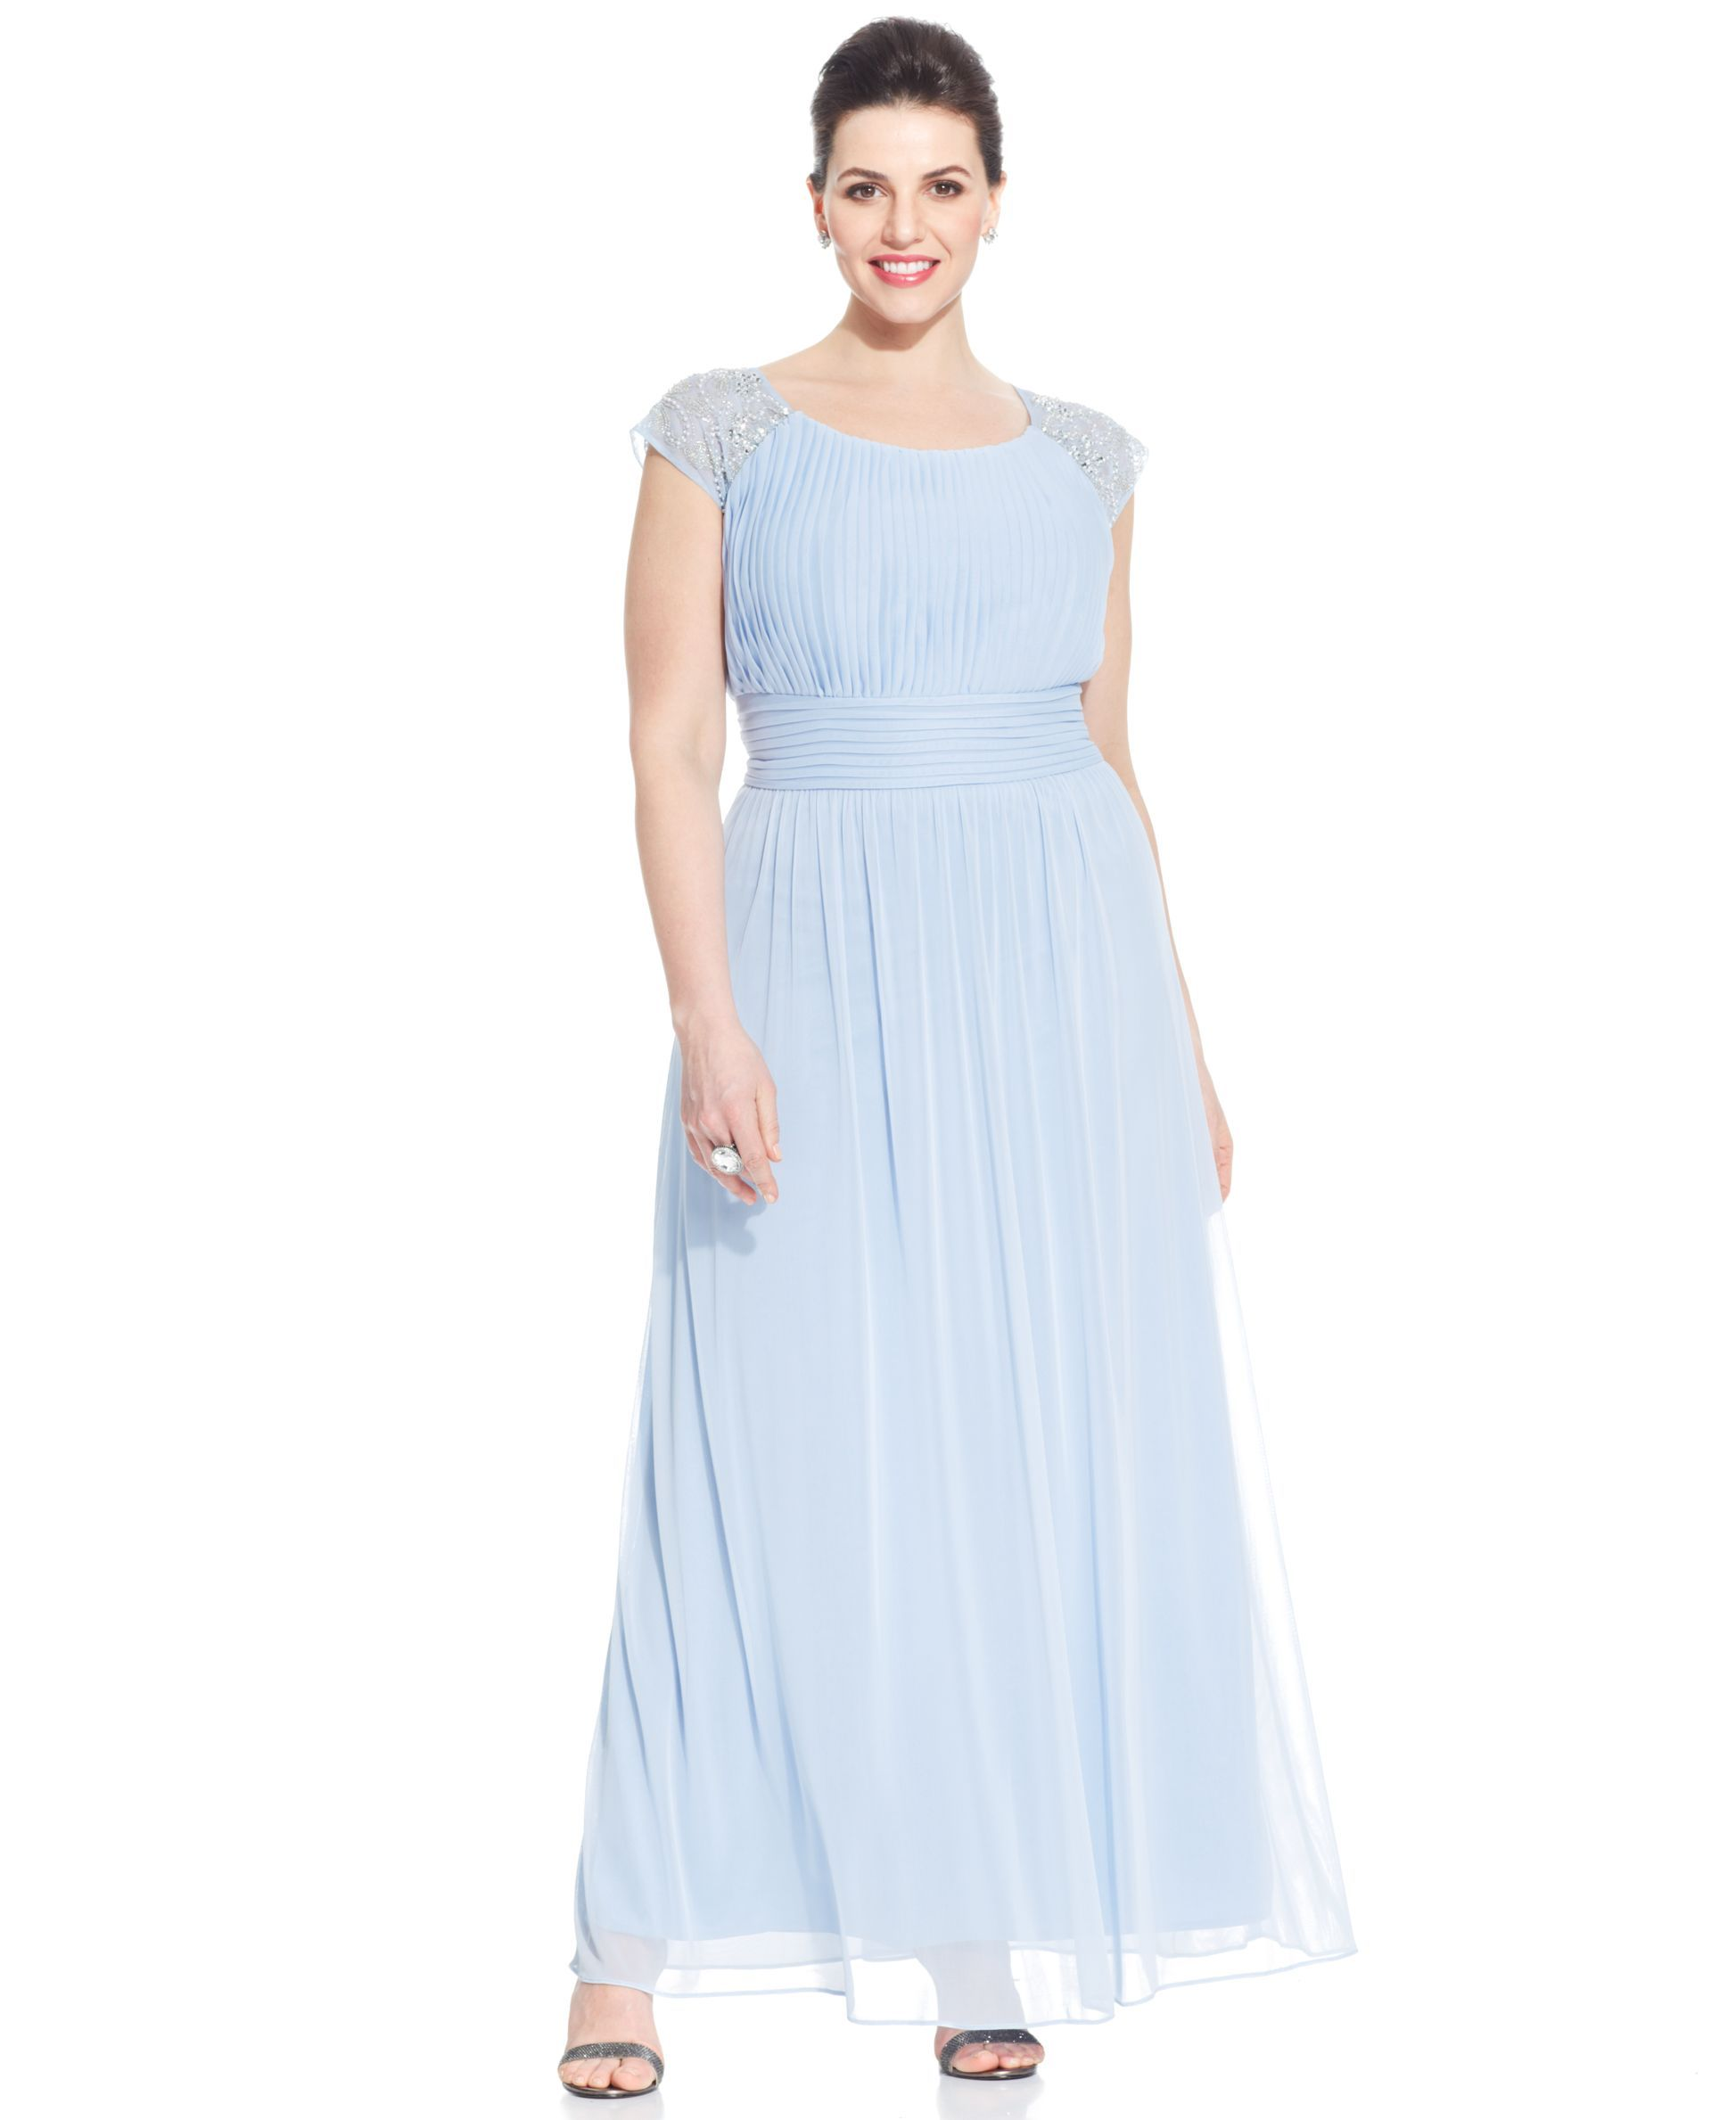 Patra Plus Size Embellished Cap-Sleeve Gown | Dresses, Gowns ...